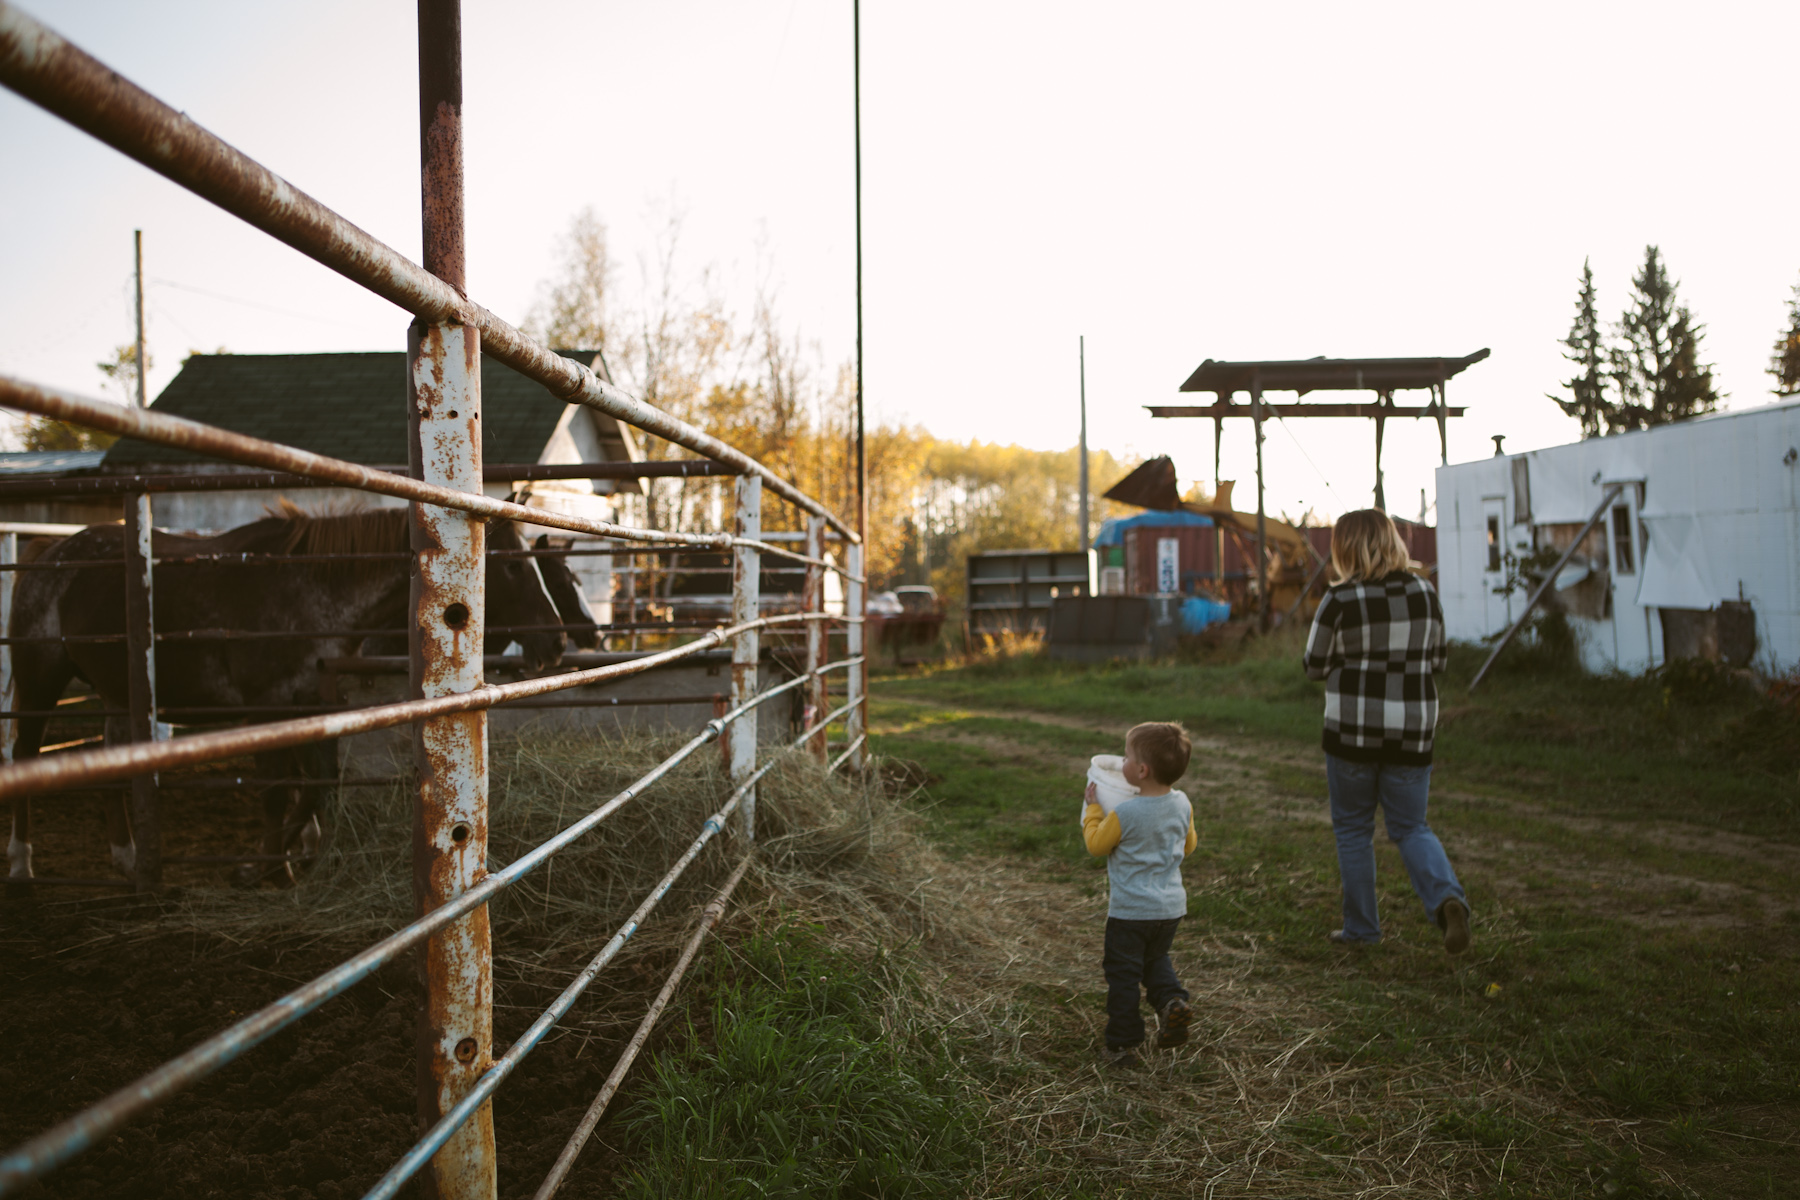 AT THE FARM ©MELISSAWEICKER